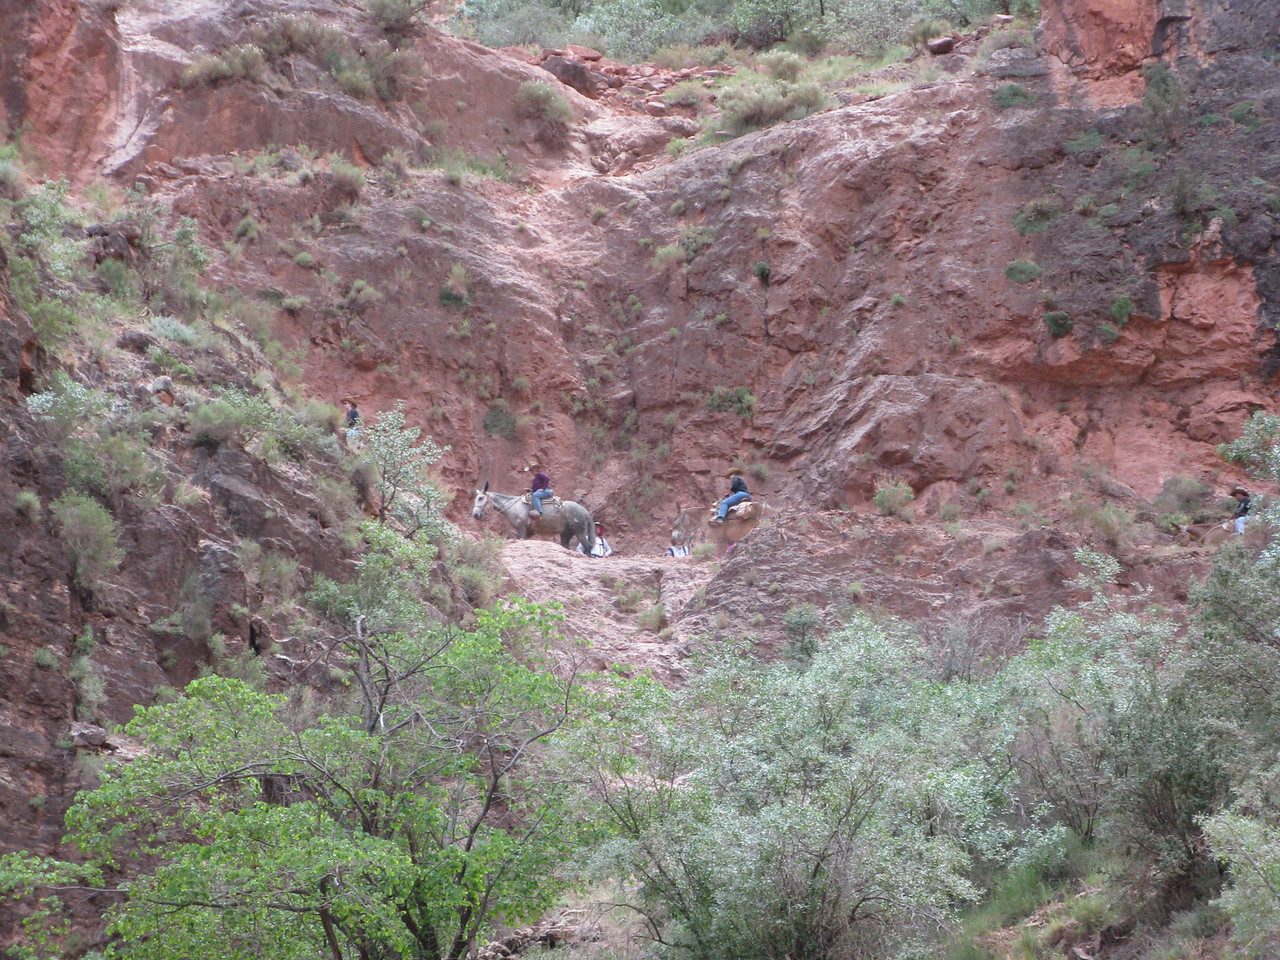 The mules climb the trail at the base of the Redwall limestone cliffs.